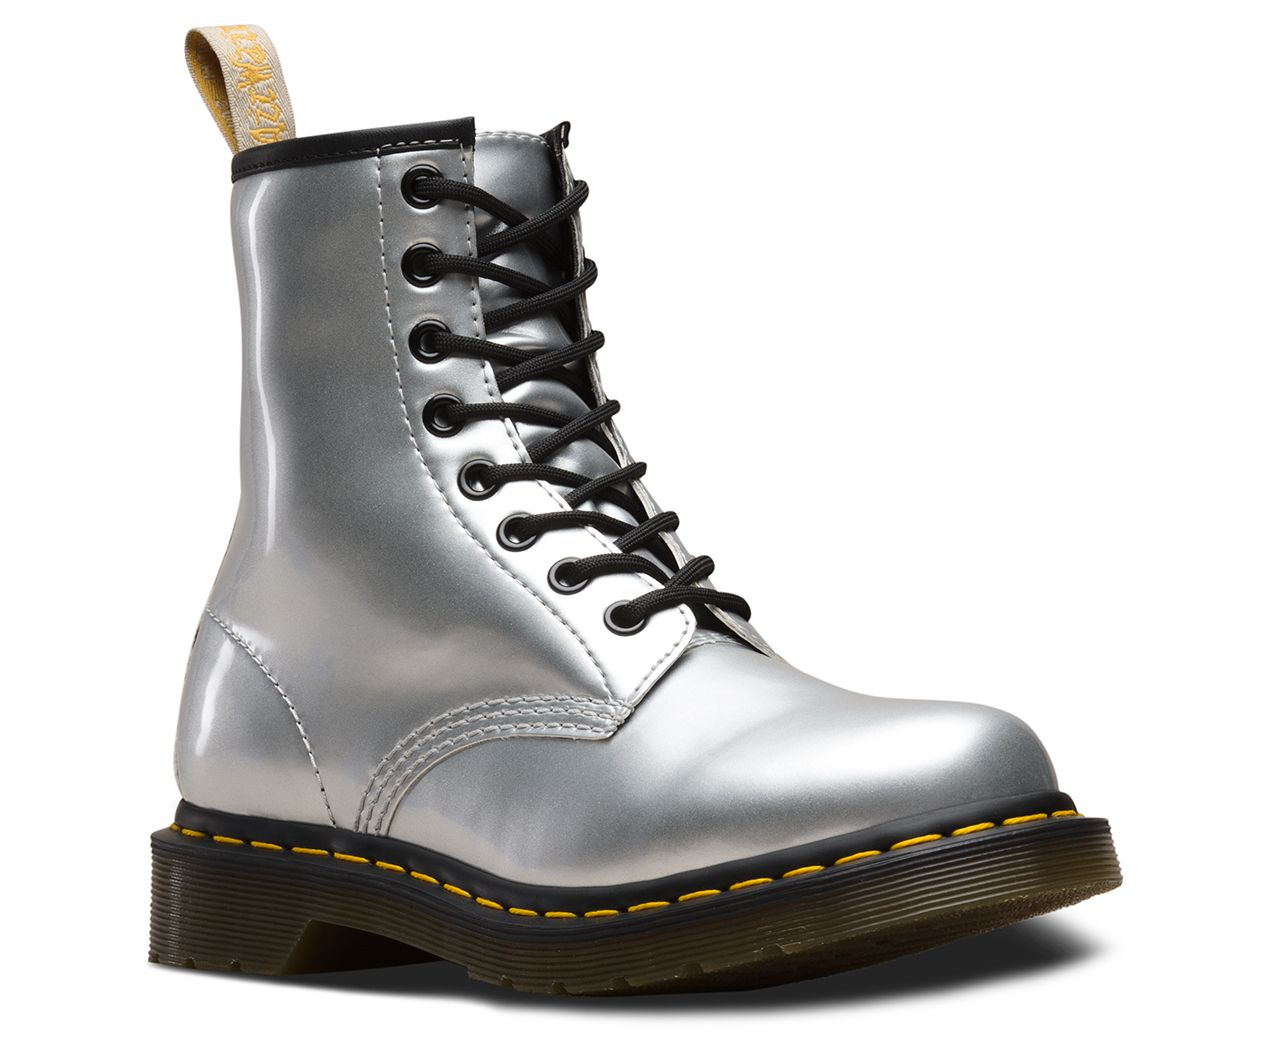 Dr martens vegan 1460 metallic chrome | Boots, Doc martens